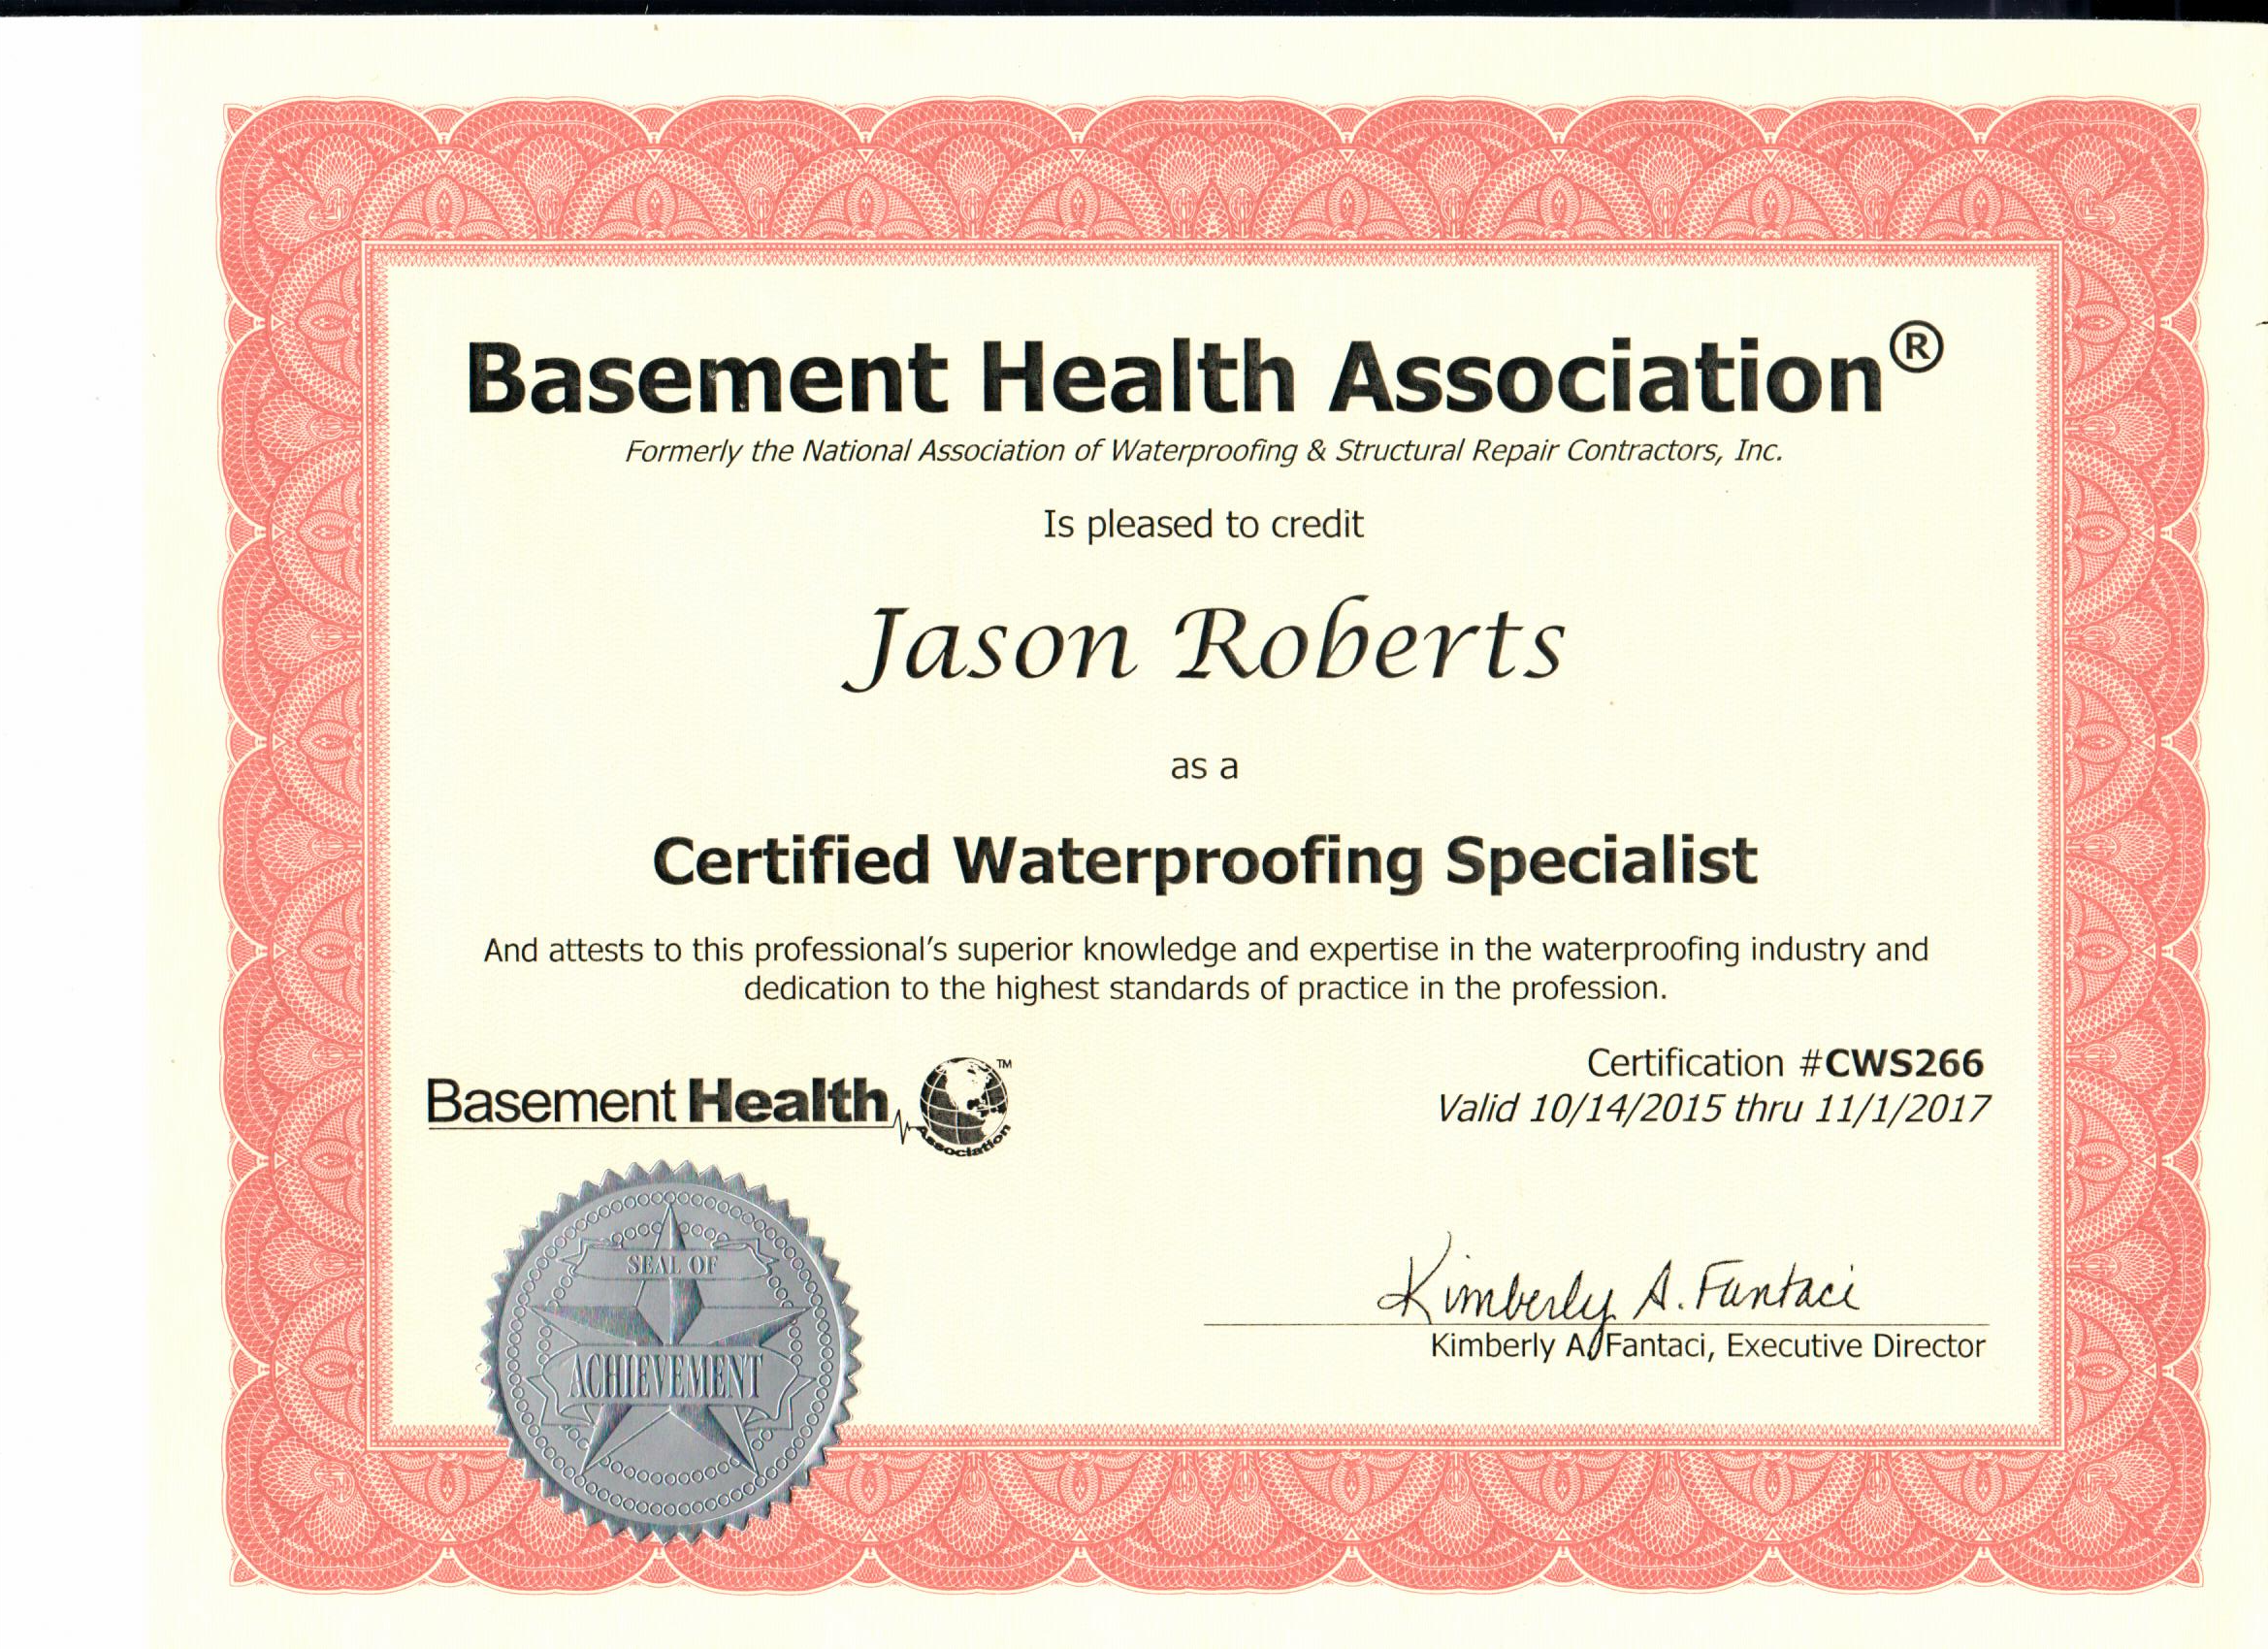 Everdry Basement Waterproofing Atlanta | Basement Health Association Certified Award Jason Roberts